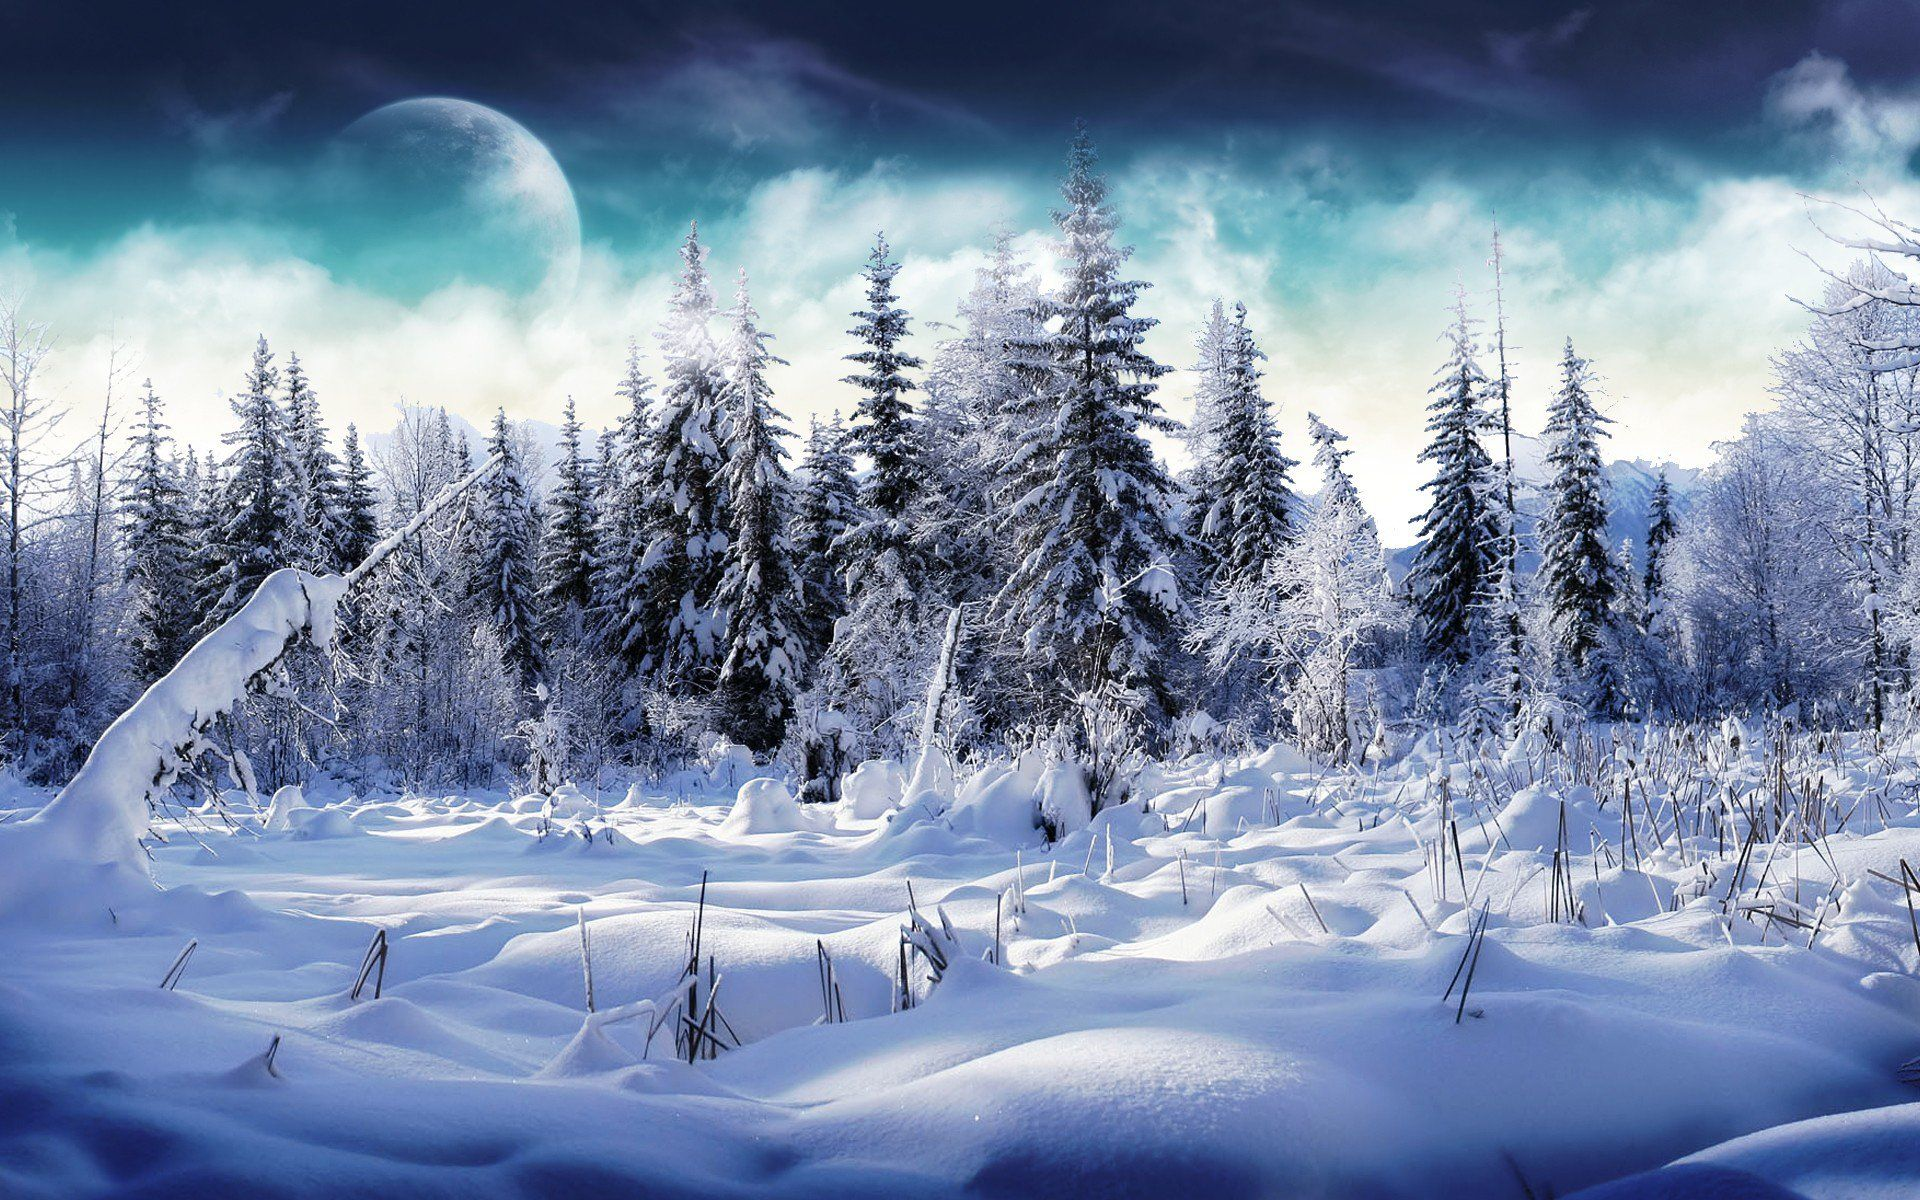 Winter Safety Tips Tips To Keep You And Your Family Safe Winter Landscape Winter Pictures Winter Scenery